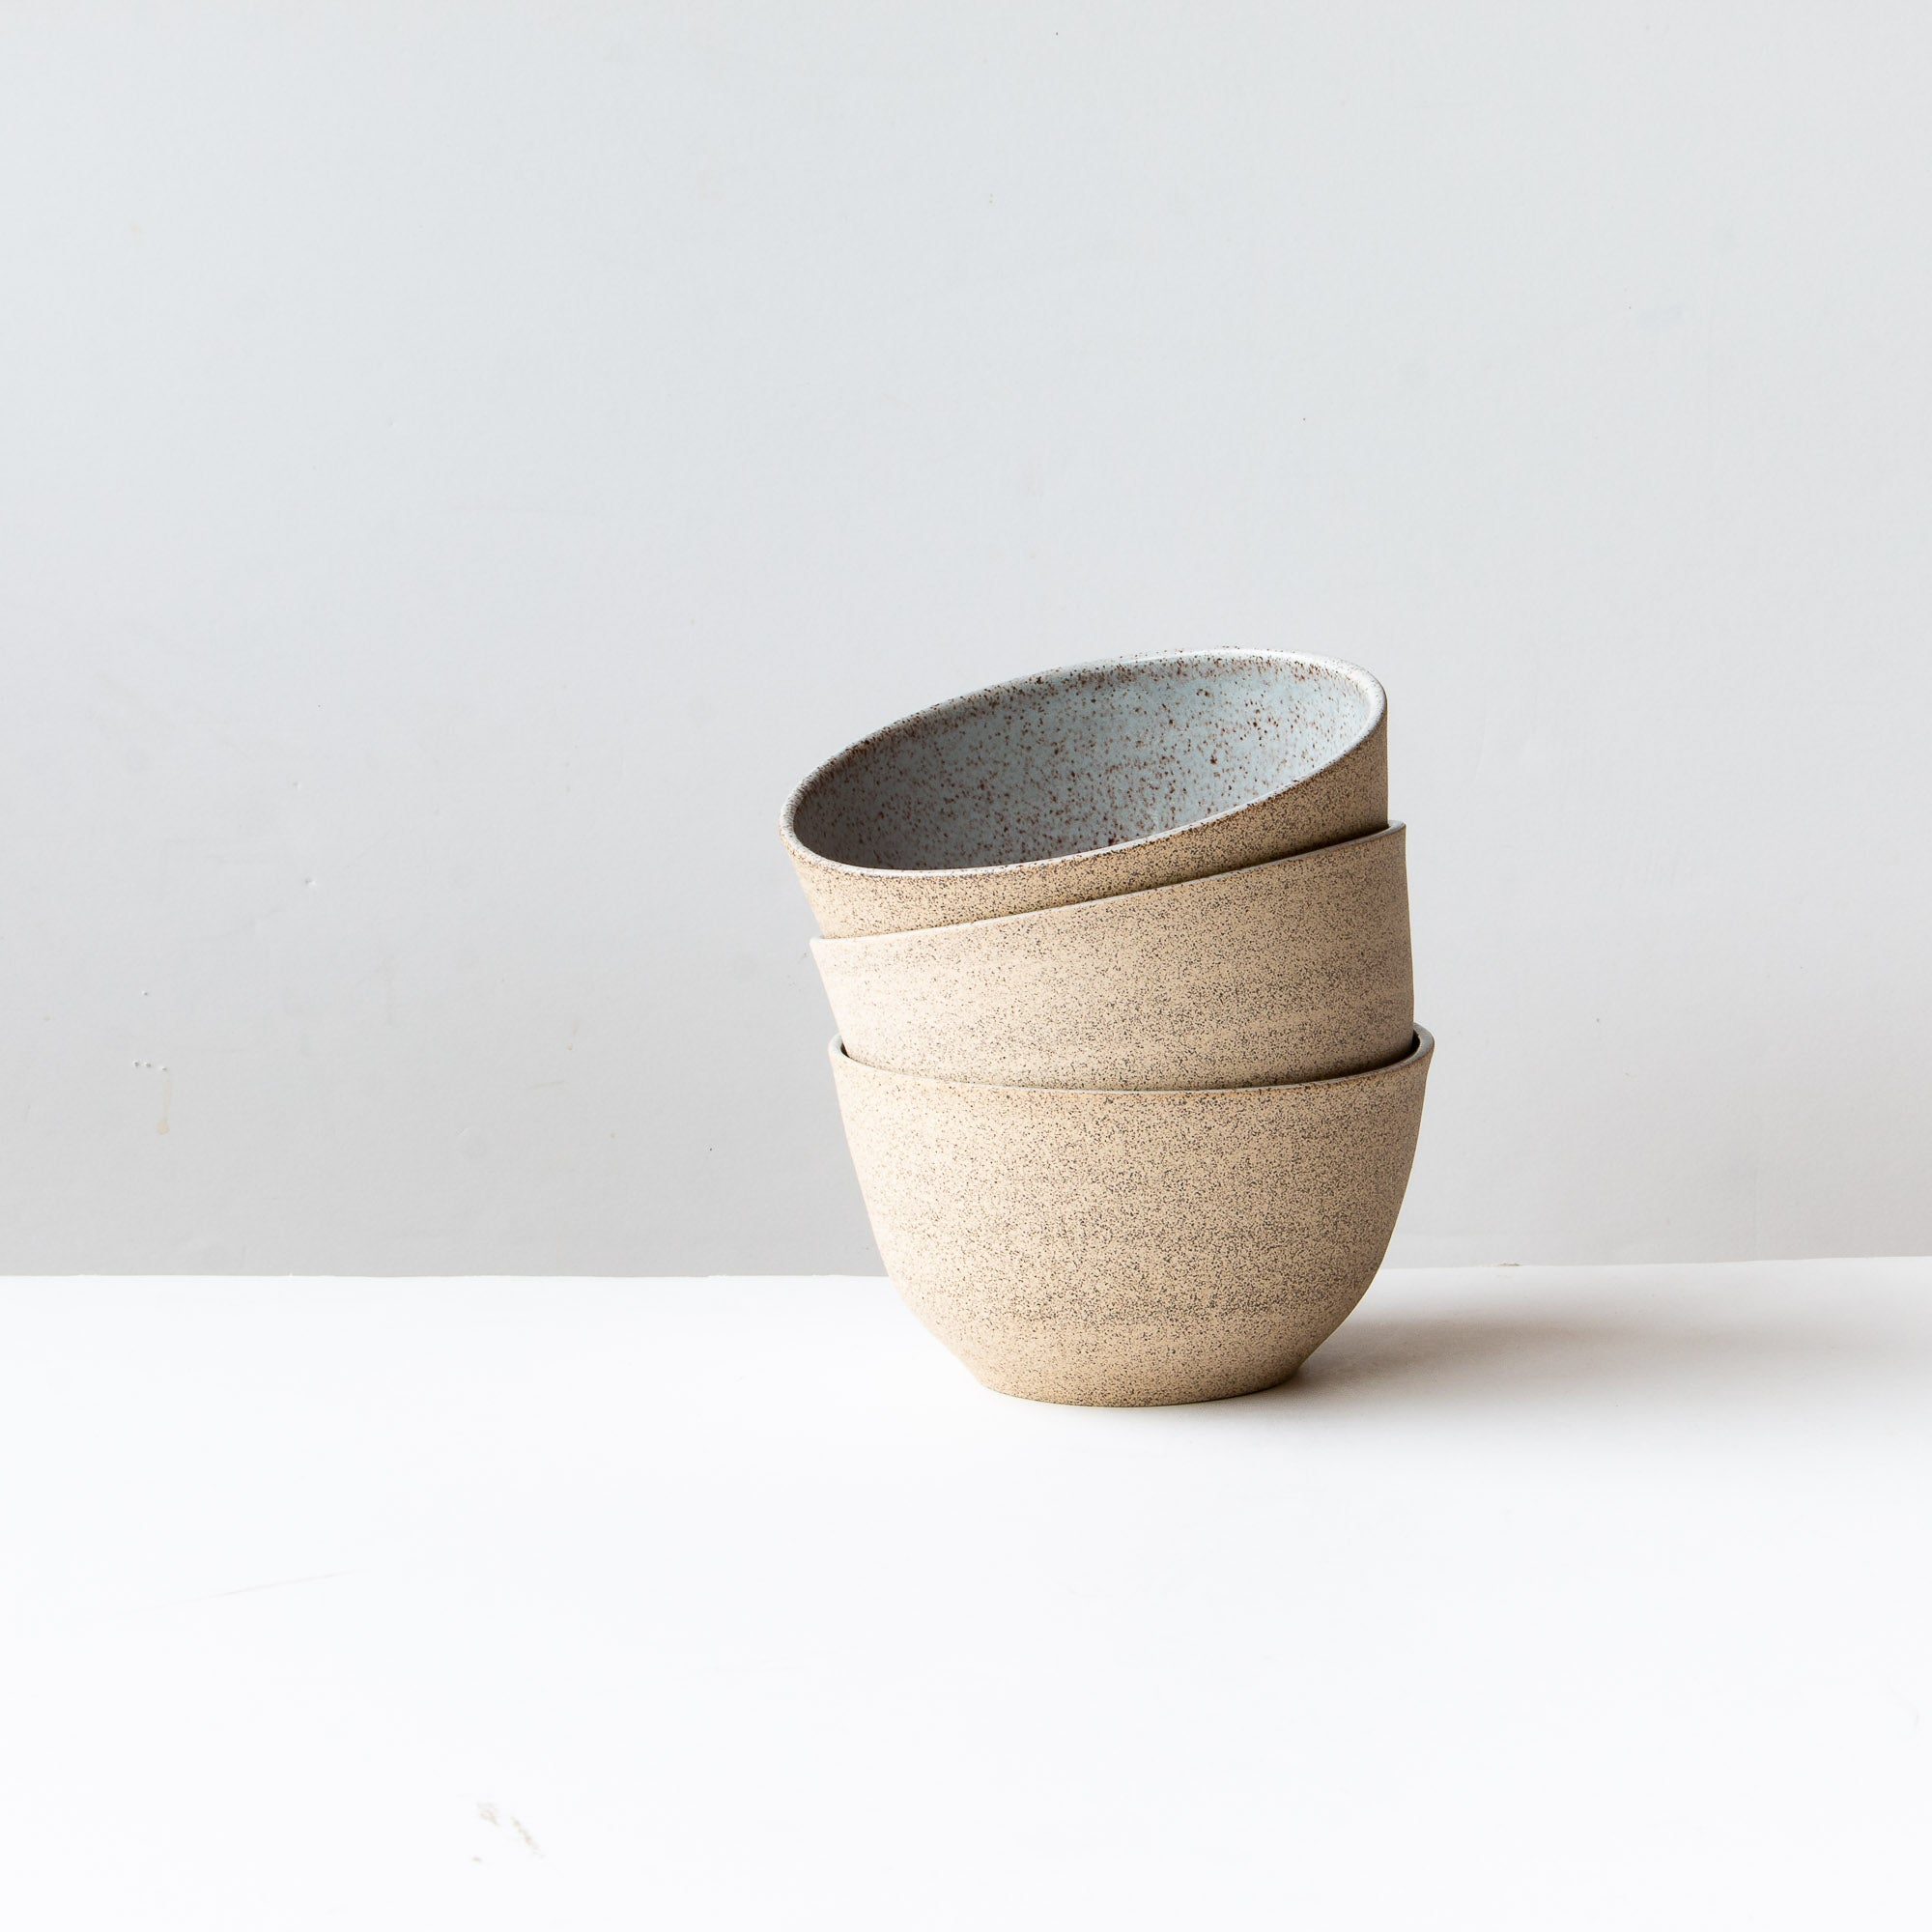 Three Speckled Stoneware Bowls - Pale Blue Glaze - Sold by Chic & Basta